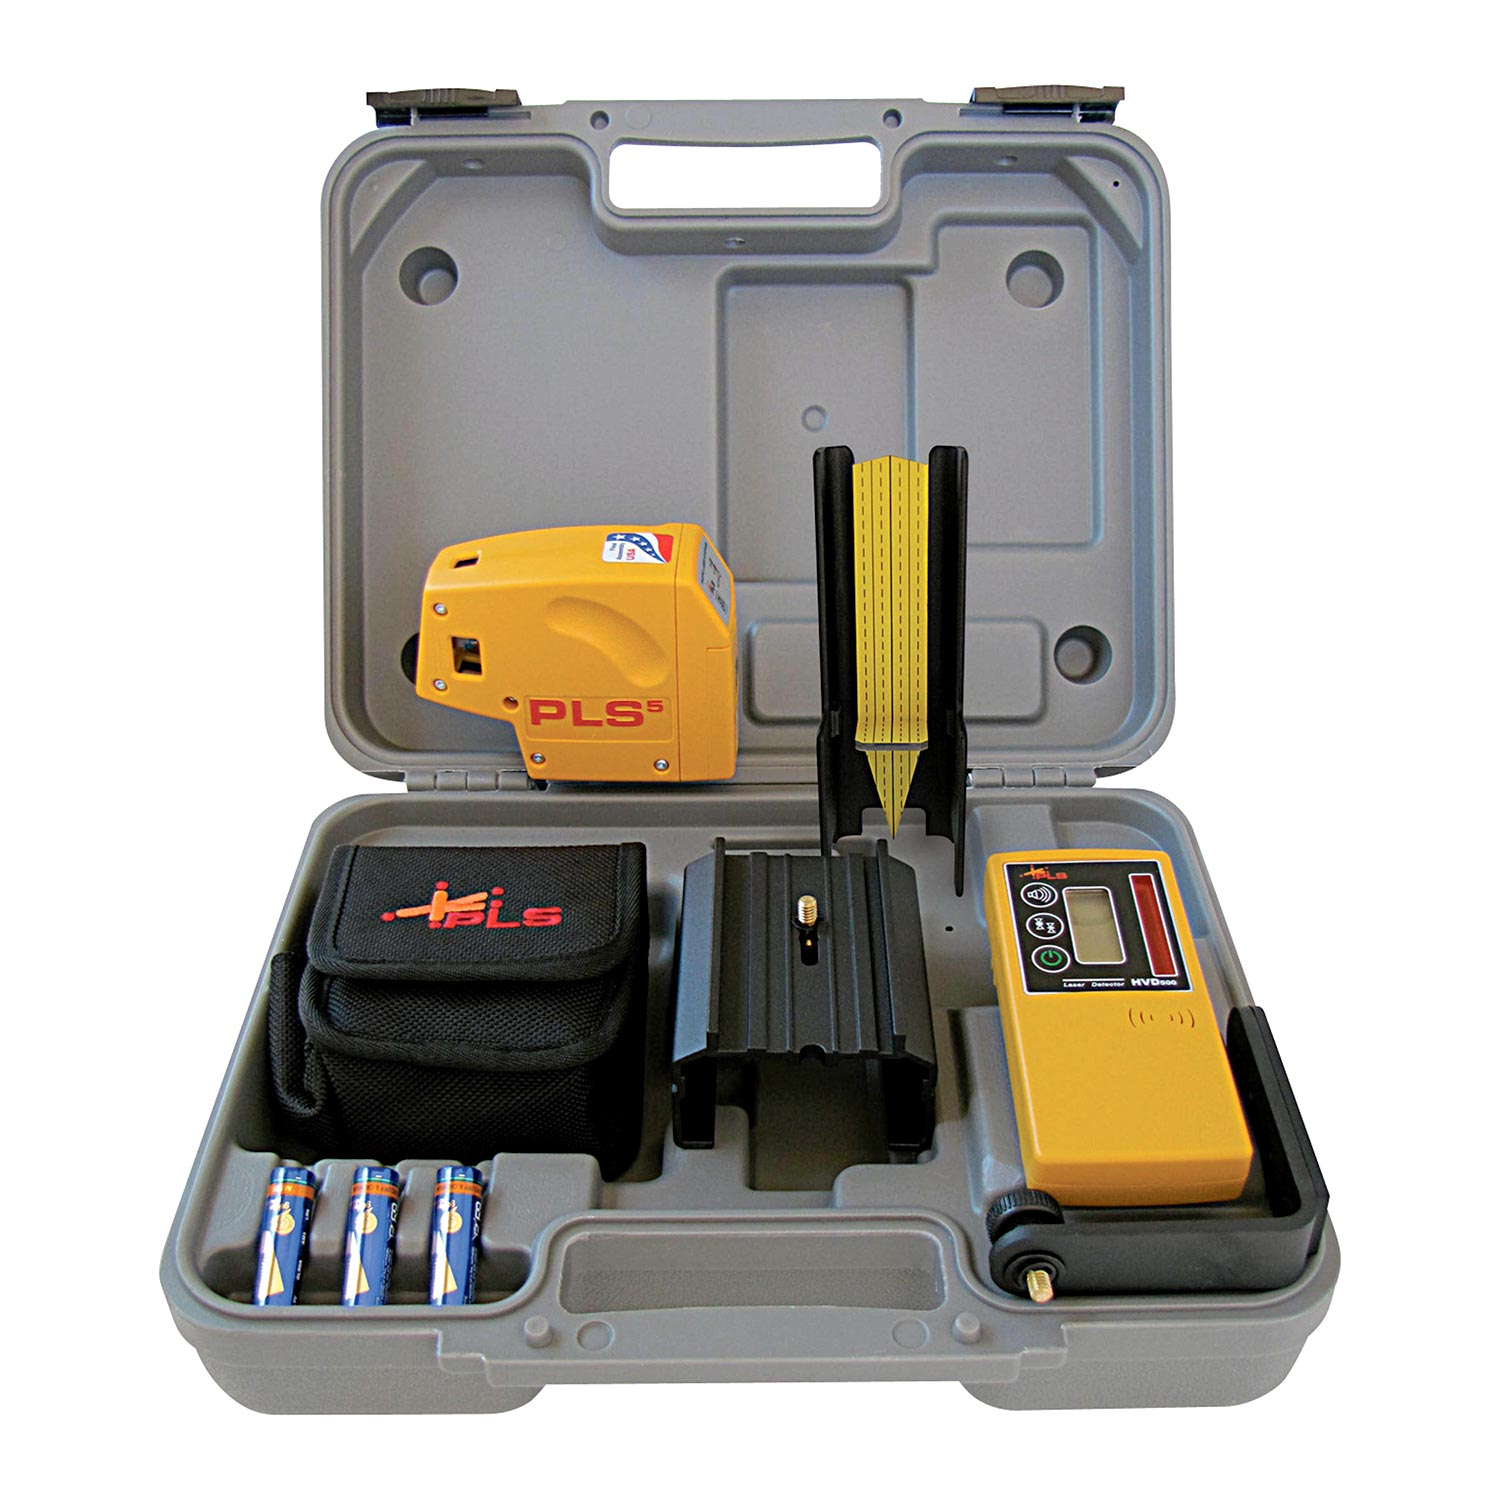 Pacific Laser Systems Pls5 System 5 Dot Laser Level With